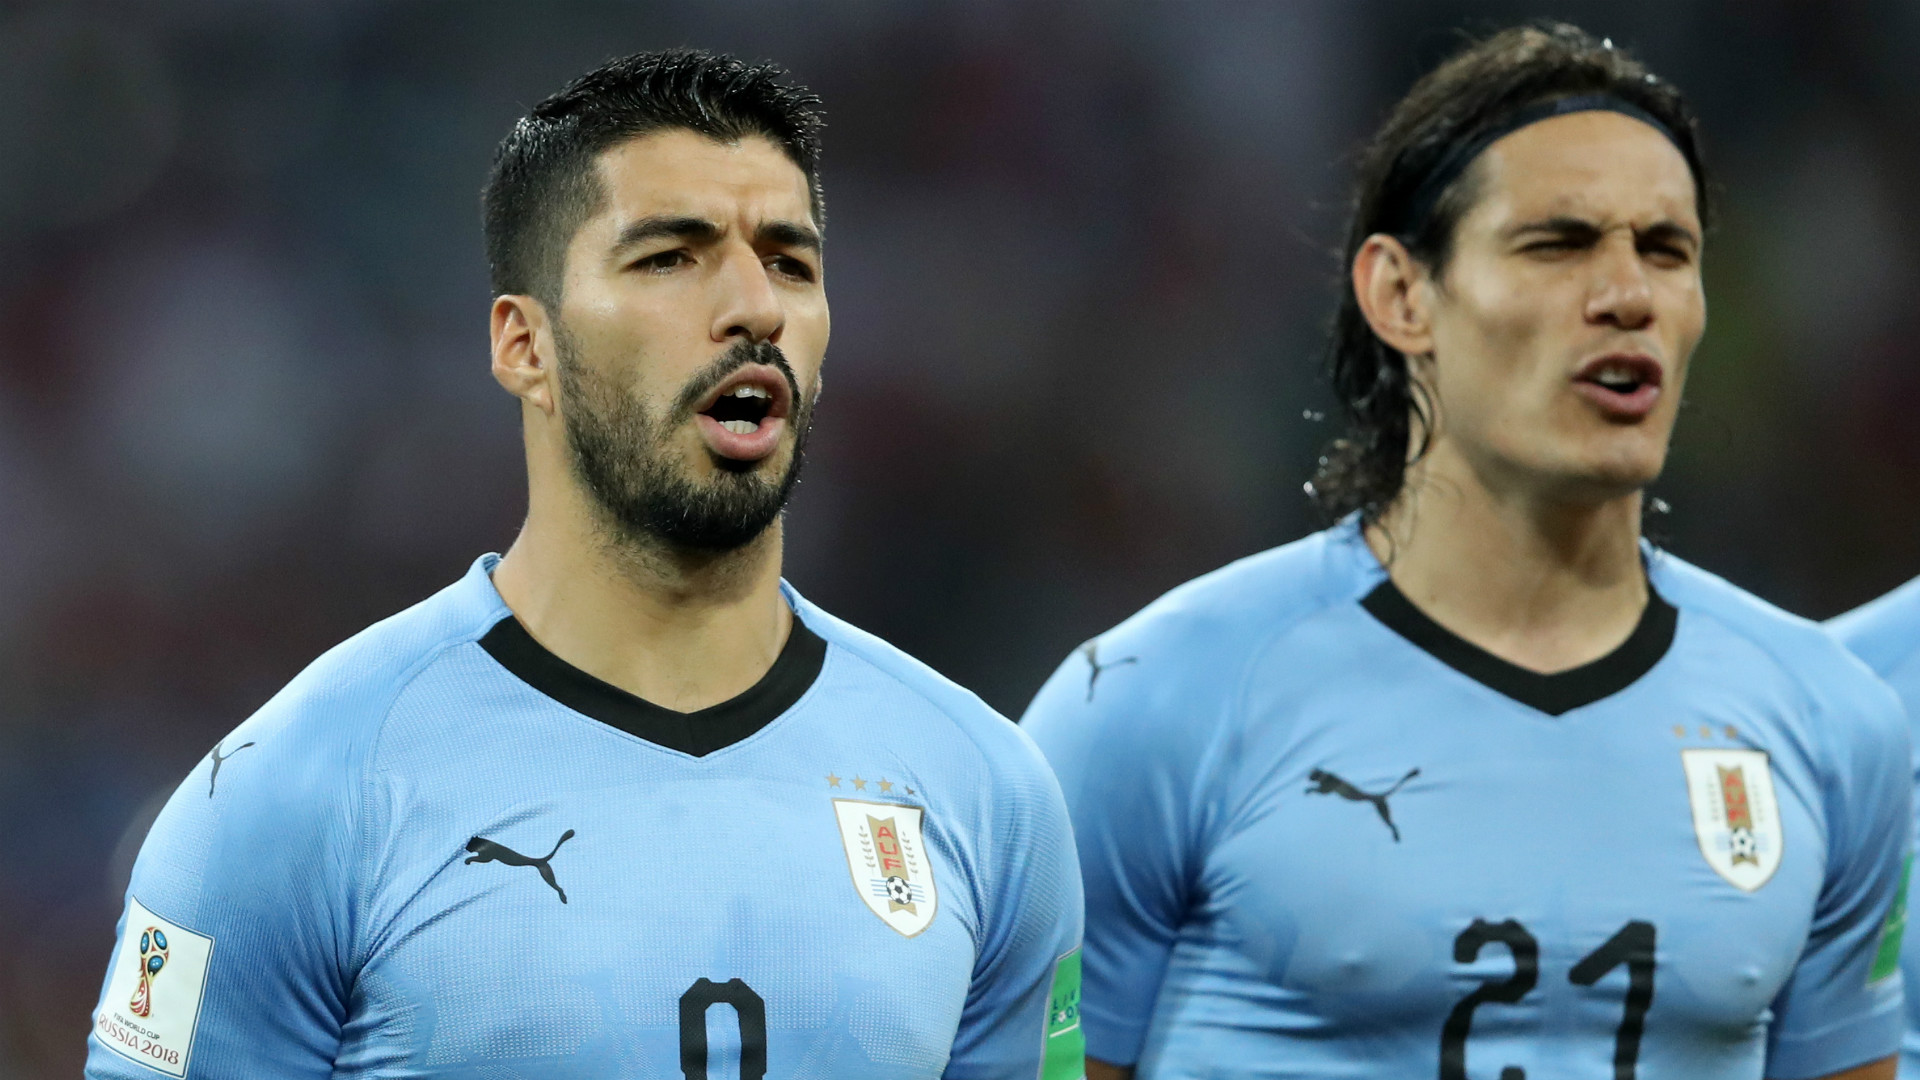 Cavani out, Stuani in for Uruguay against France